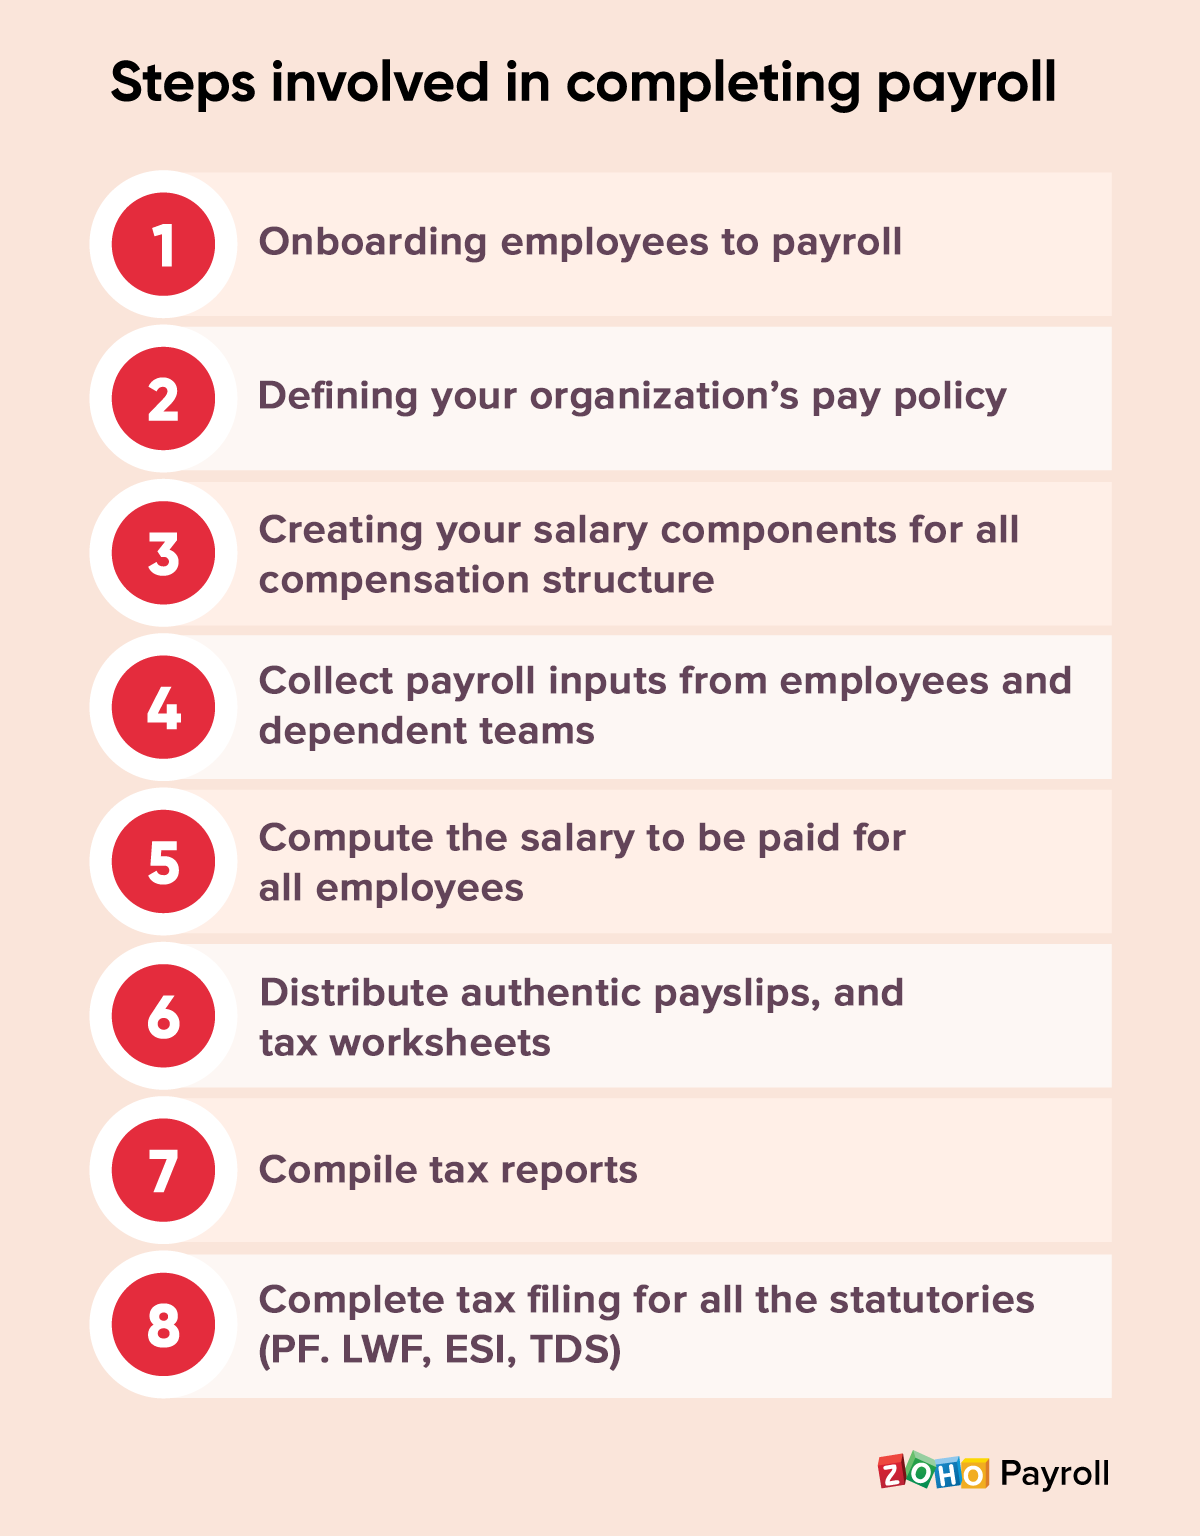 Step by step payroll process - Zoho Payroll